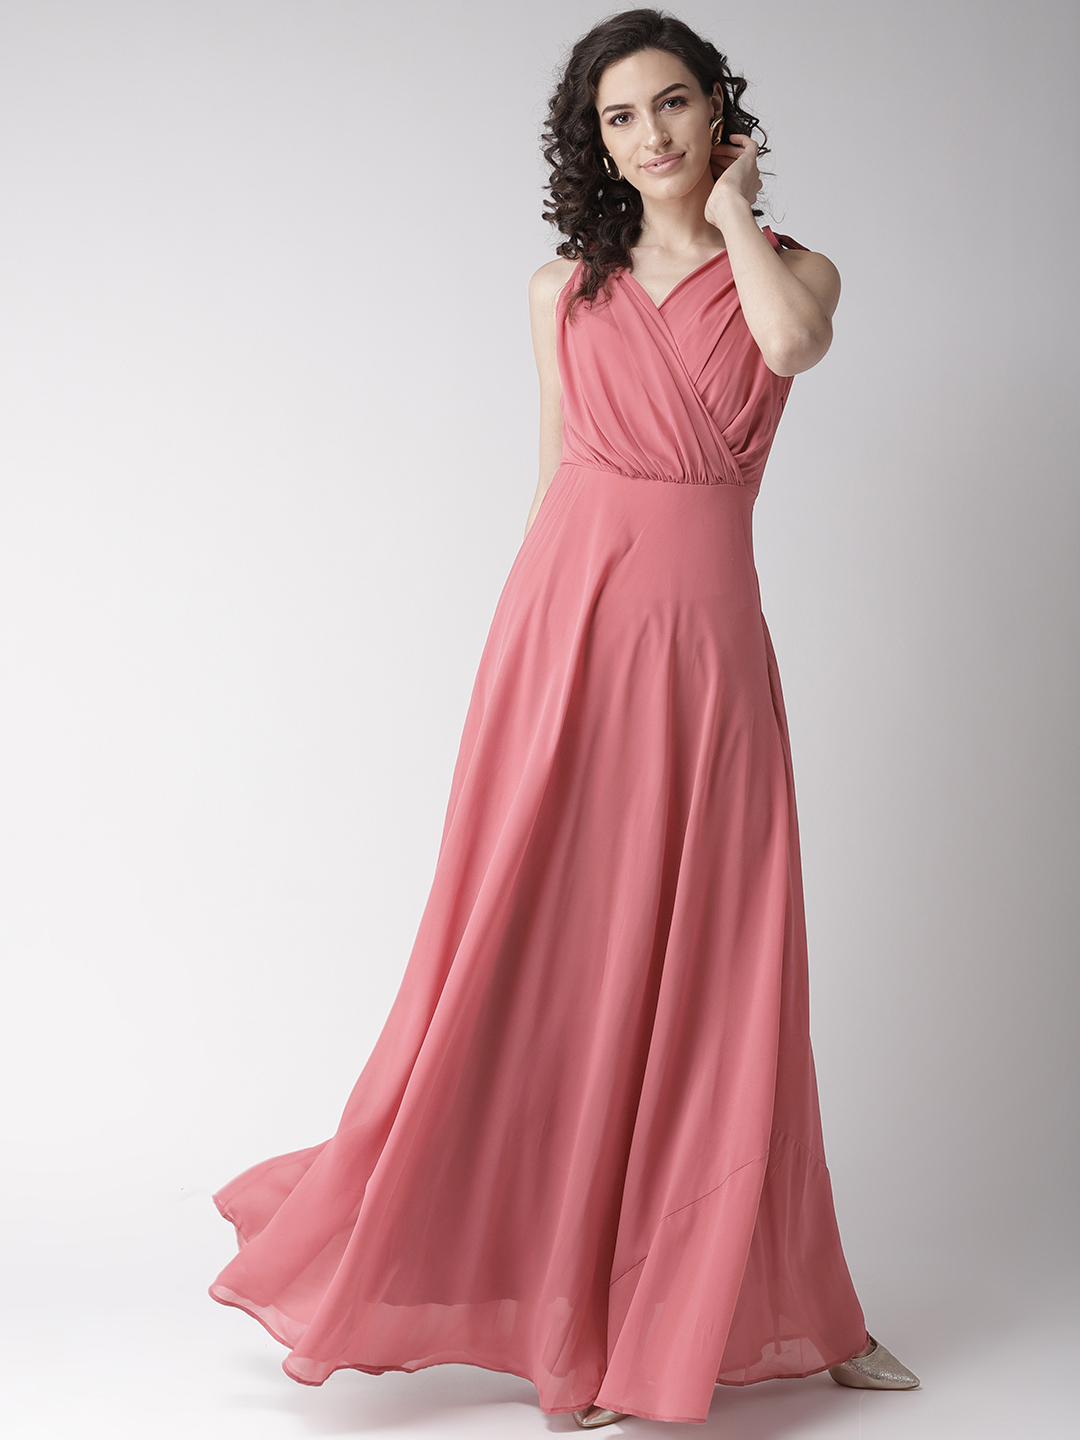 Dresses-Ready For The Royals Pink Maxi Dress6